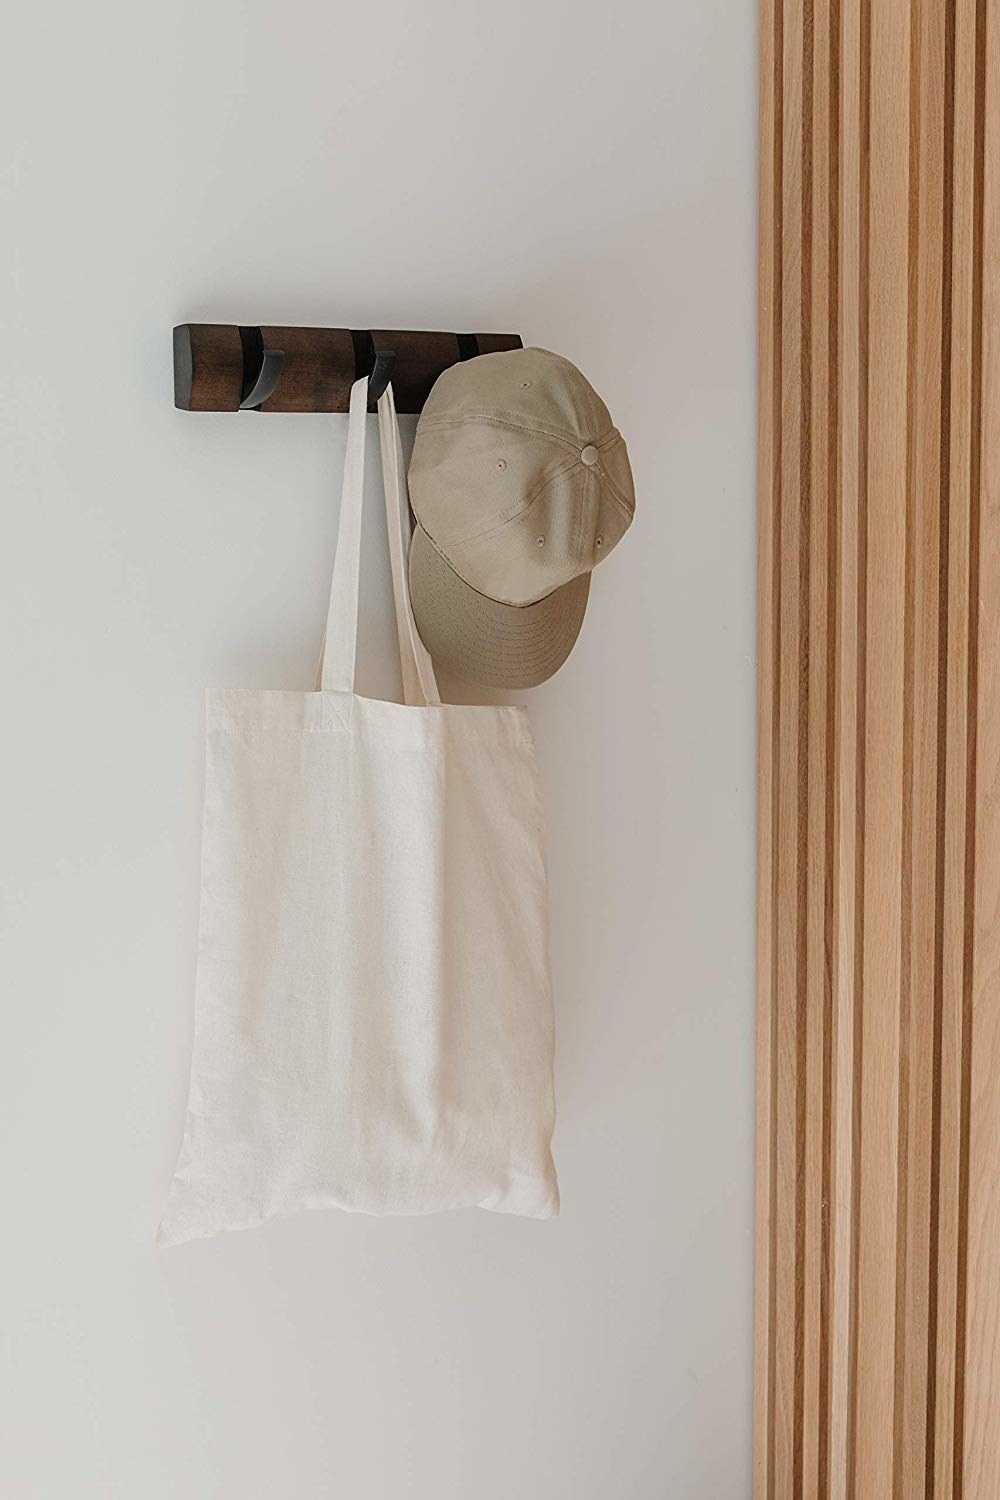 Hat and tote bag hanging on flip-up hook unit